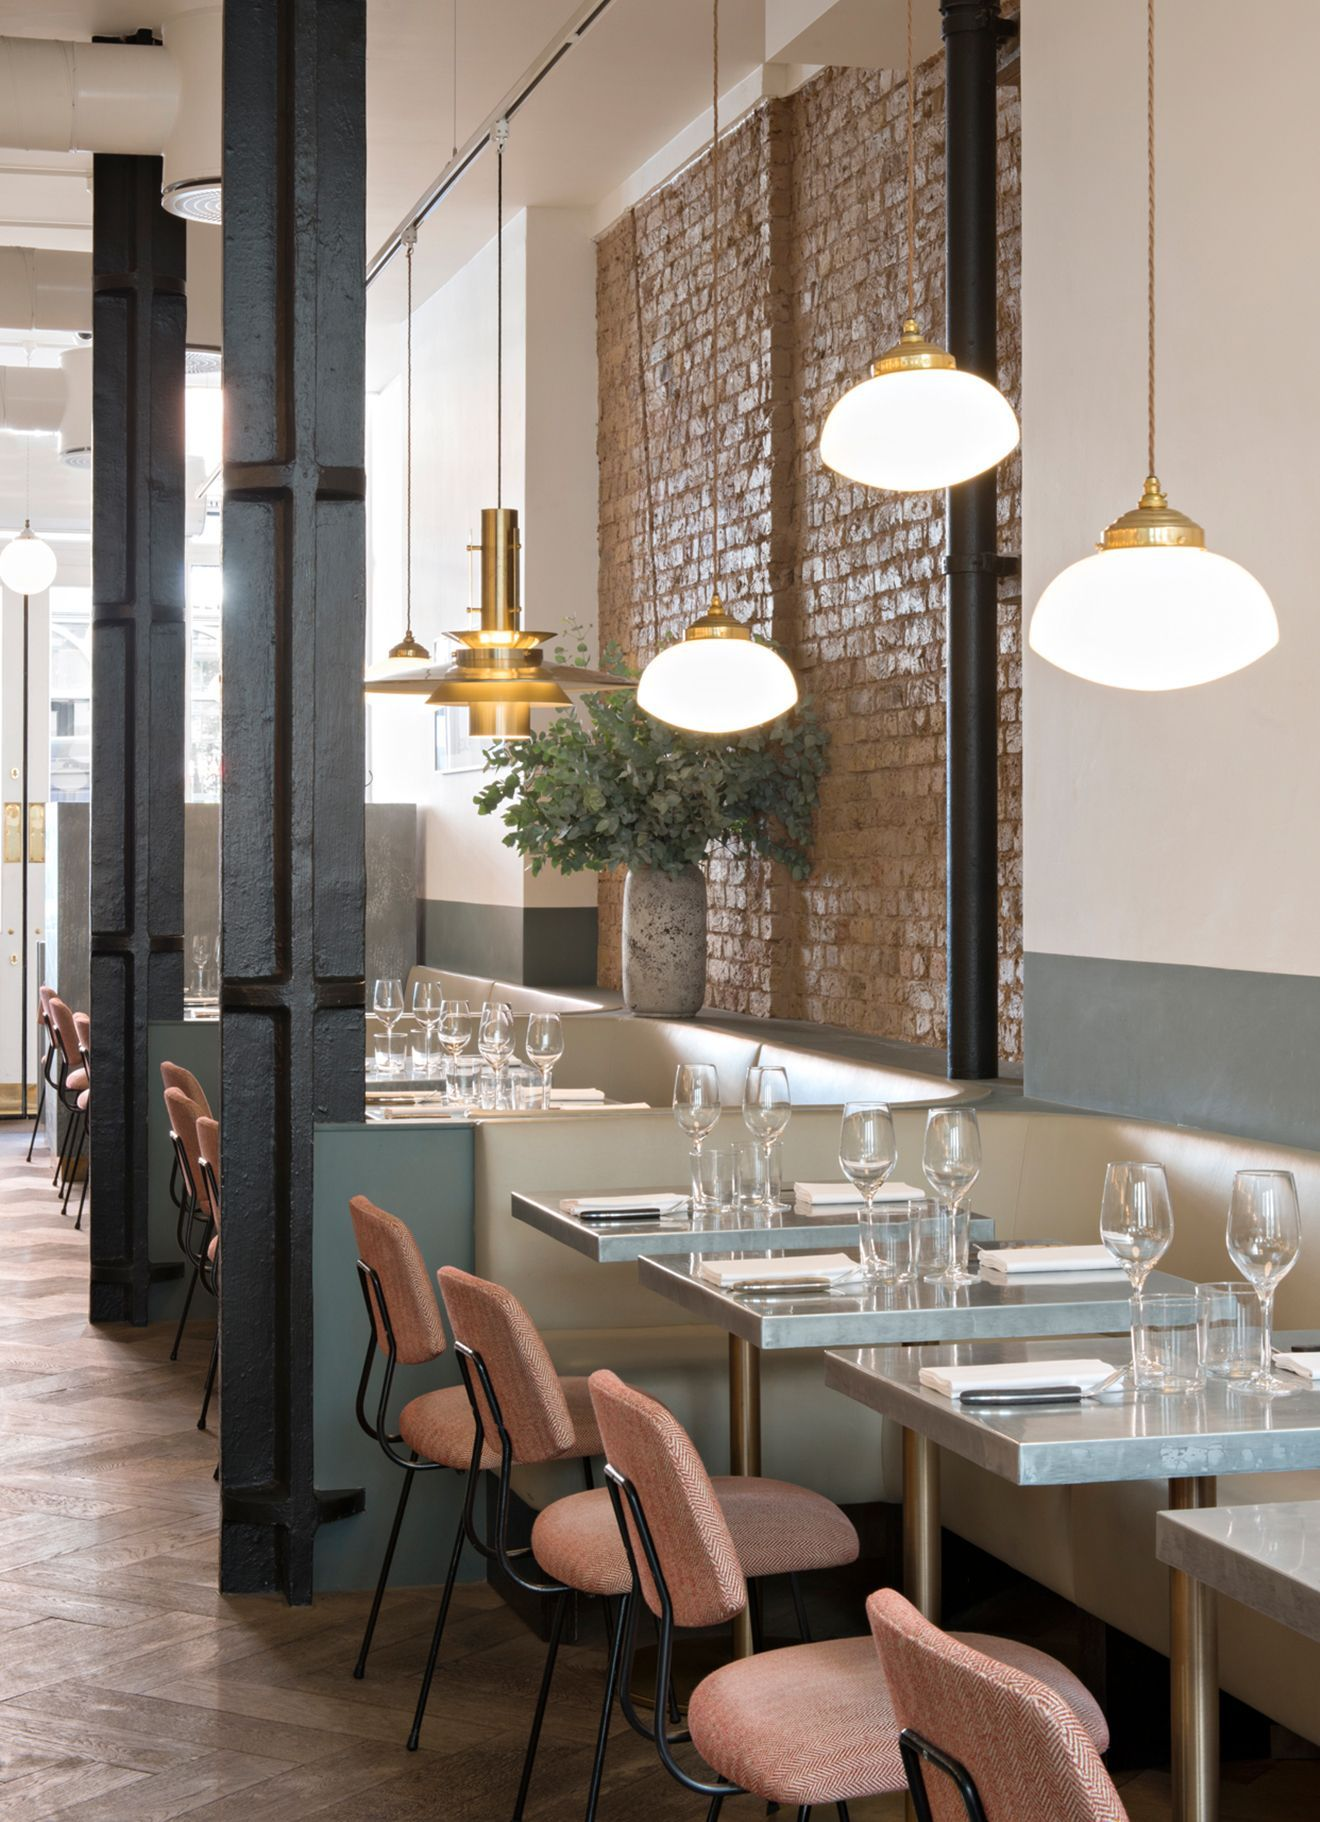 With exposed brickwork and brass pendant lighting frenchie restaurant covent garden london designed by emilie bonaventure for chef gregory marchand